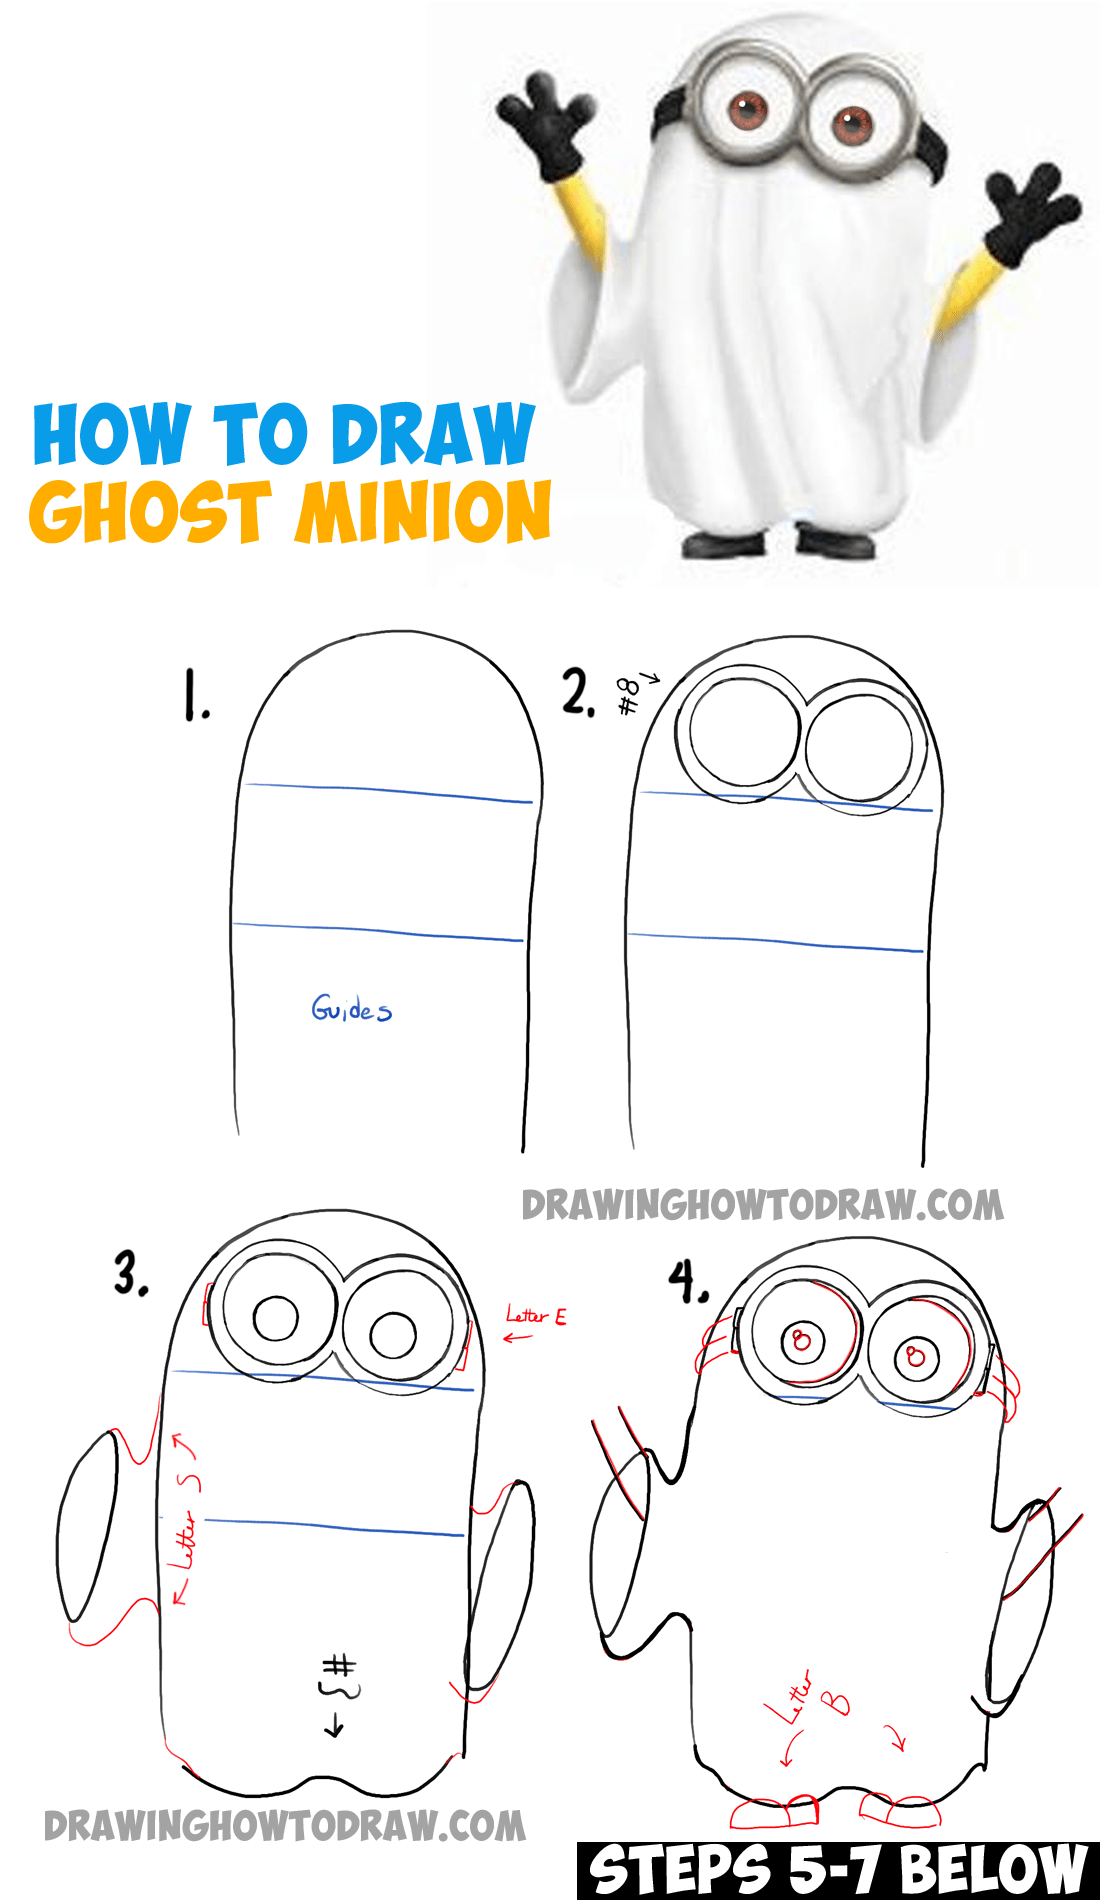 How To Draw Ghost Minions For Halloween And Trick Or Treating Drawing Tutorial How To Draw Step By Step Drawing Tutorials Step By Step Drawing Halloween Drawings Drawing Tutorial